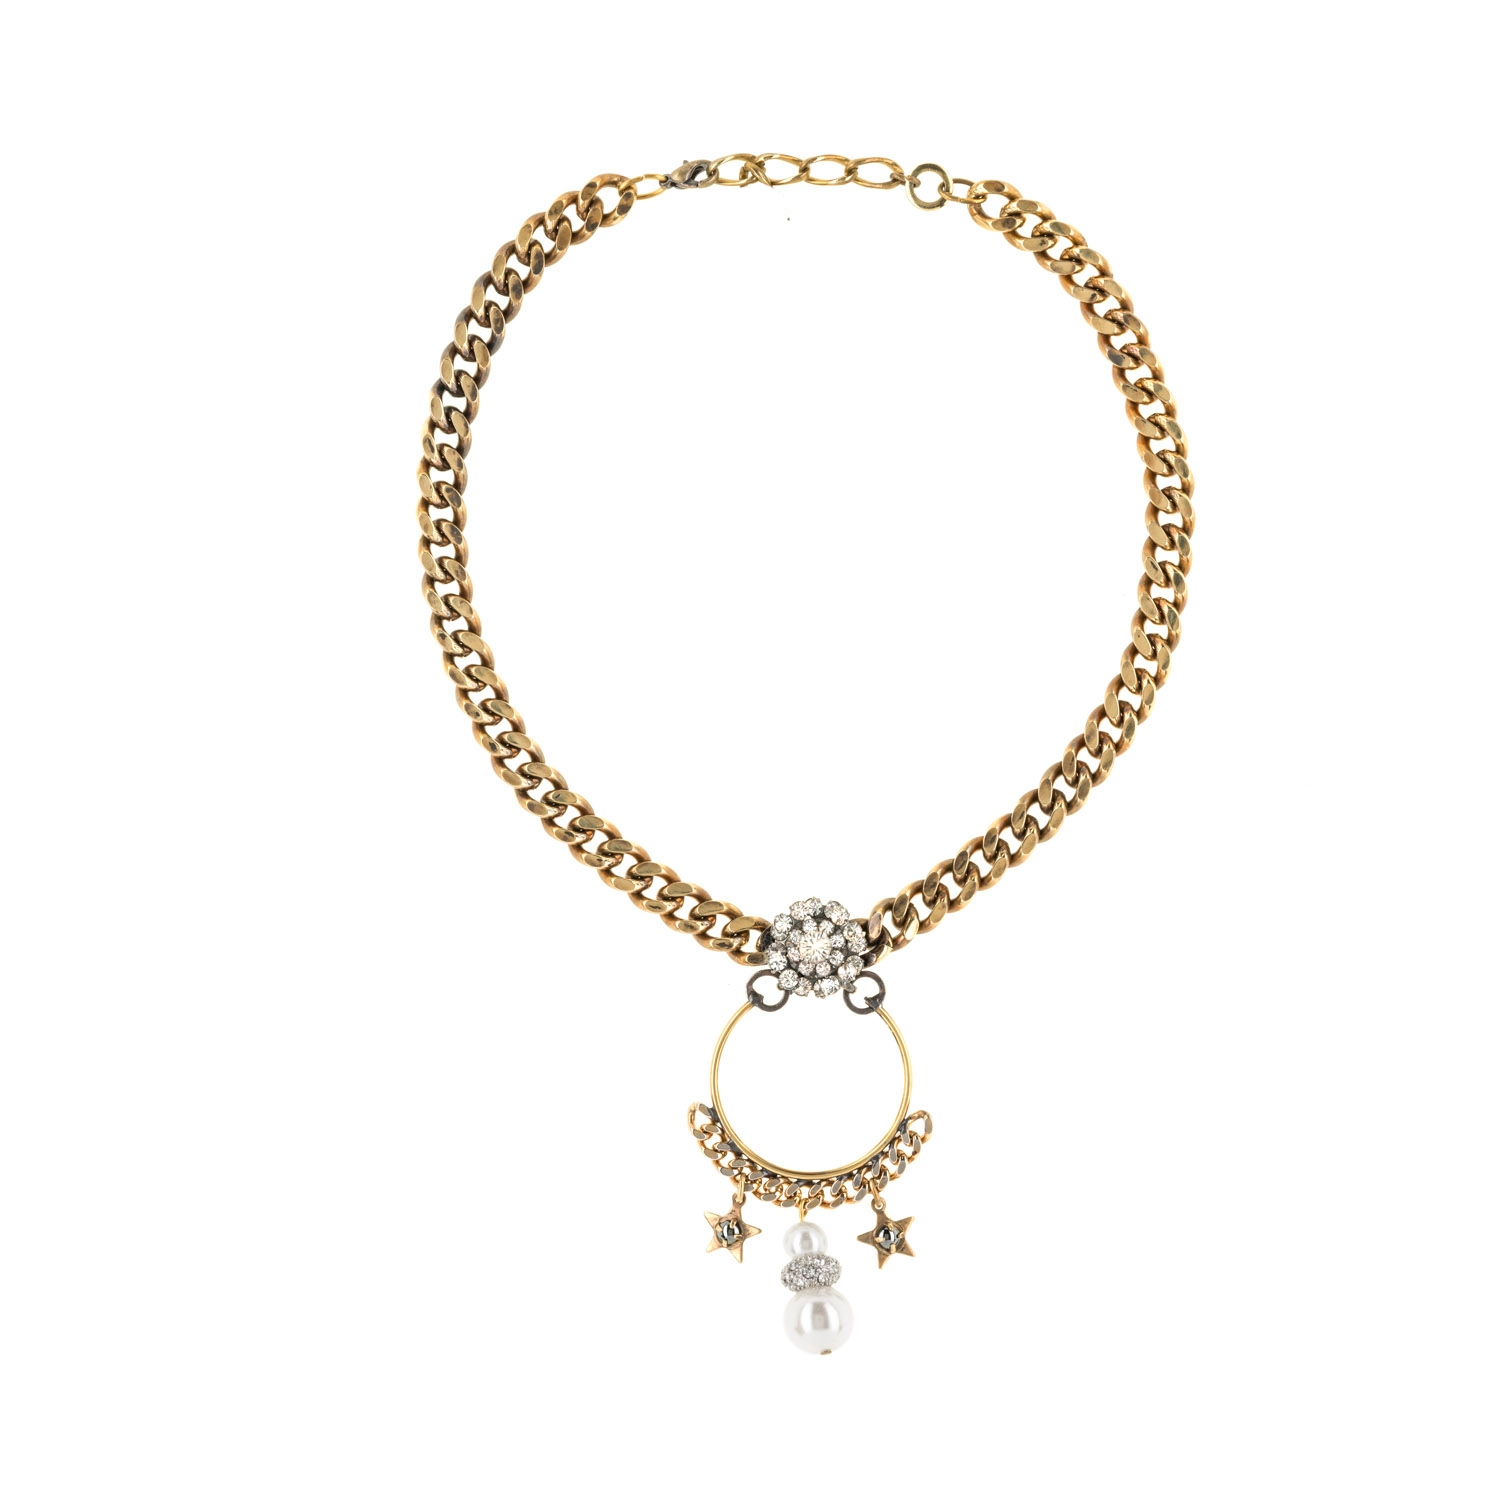 HALO & CO ANTQIUE DISTRESSED GOLD CHAIN AND PEARL DROP NECKLACE